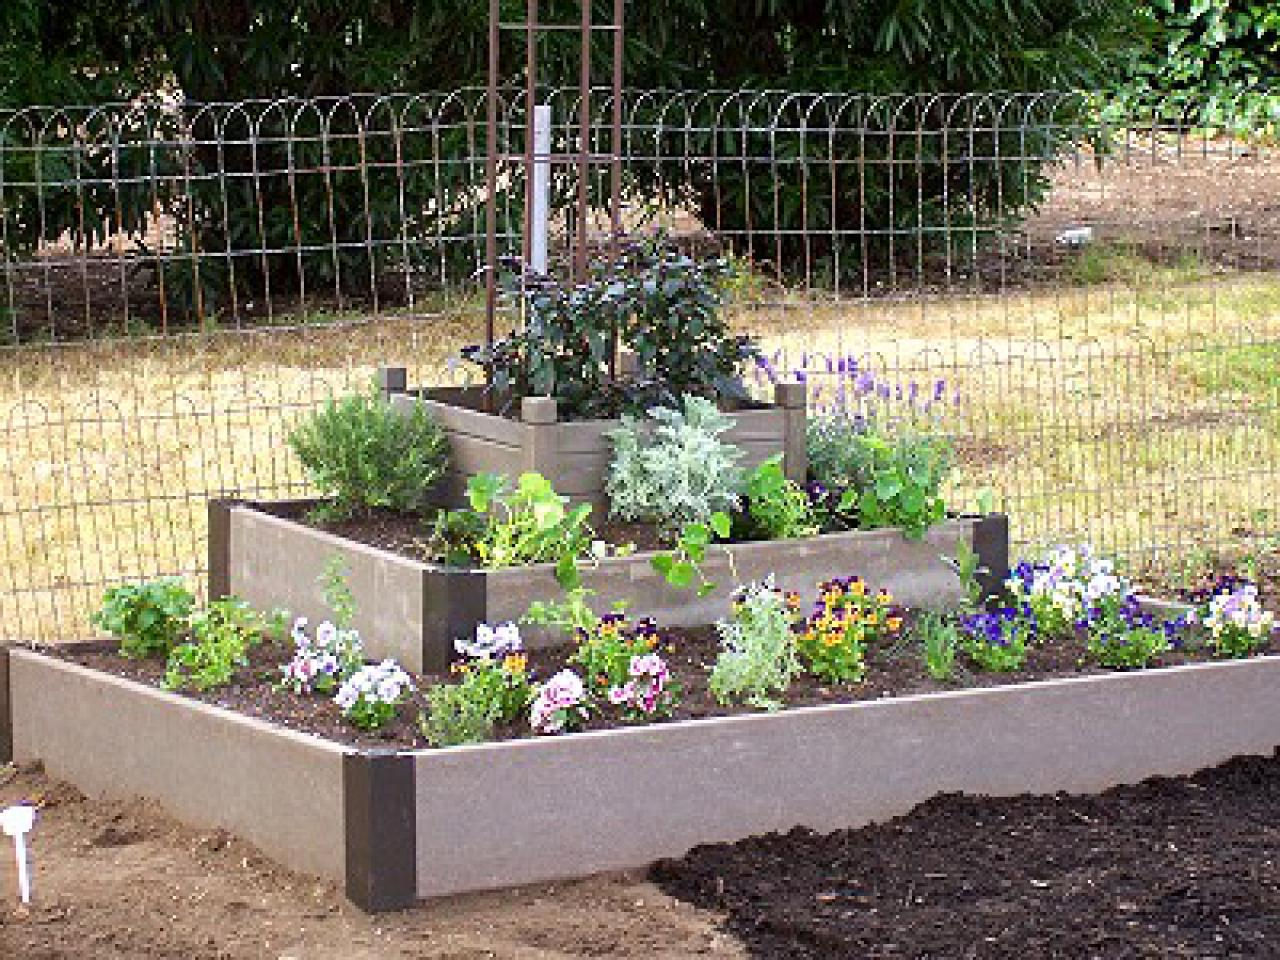 area raised simple deck beds a build bed building corrugated iron garden diy gardening